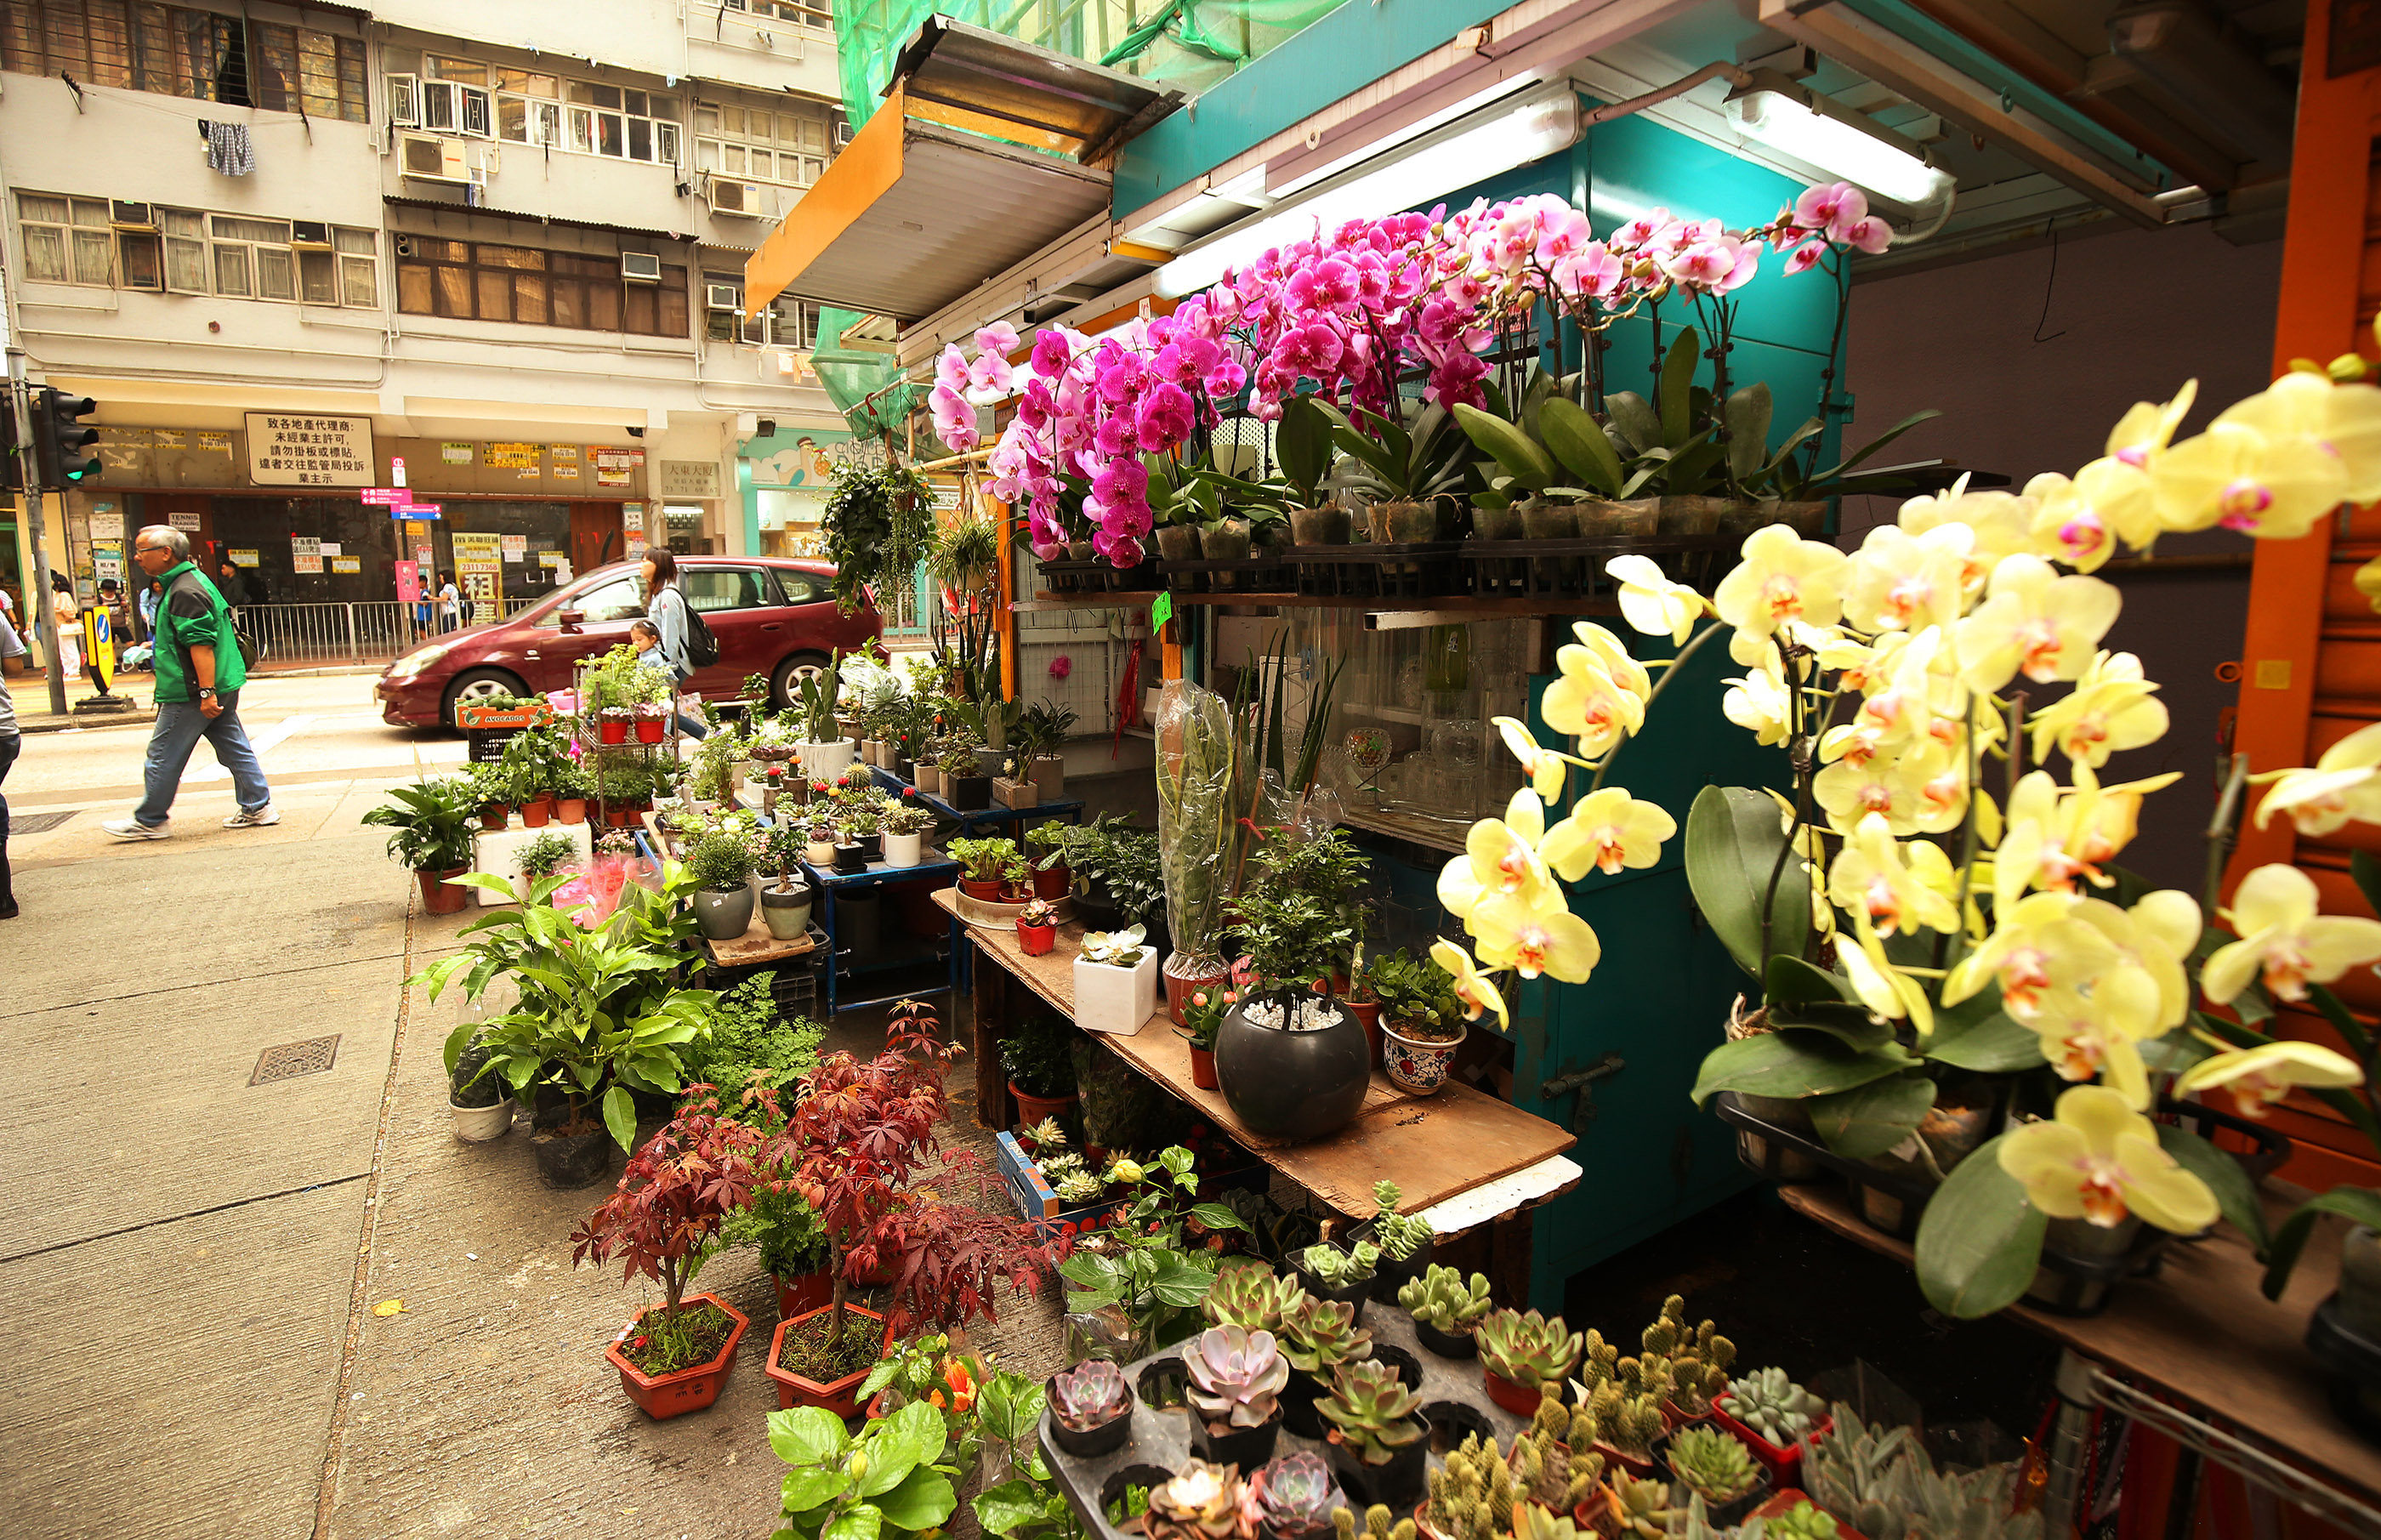 Flowers are sold in the market in Hong Kong on Saturday, April 21, 2018.